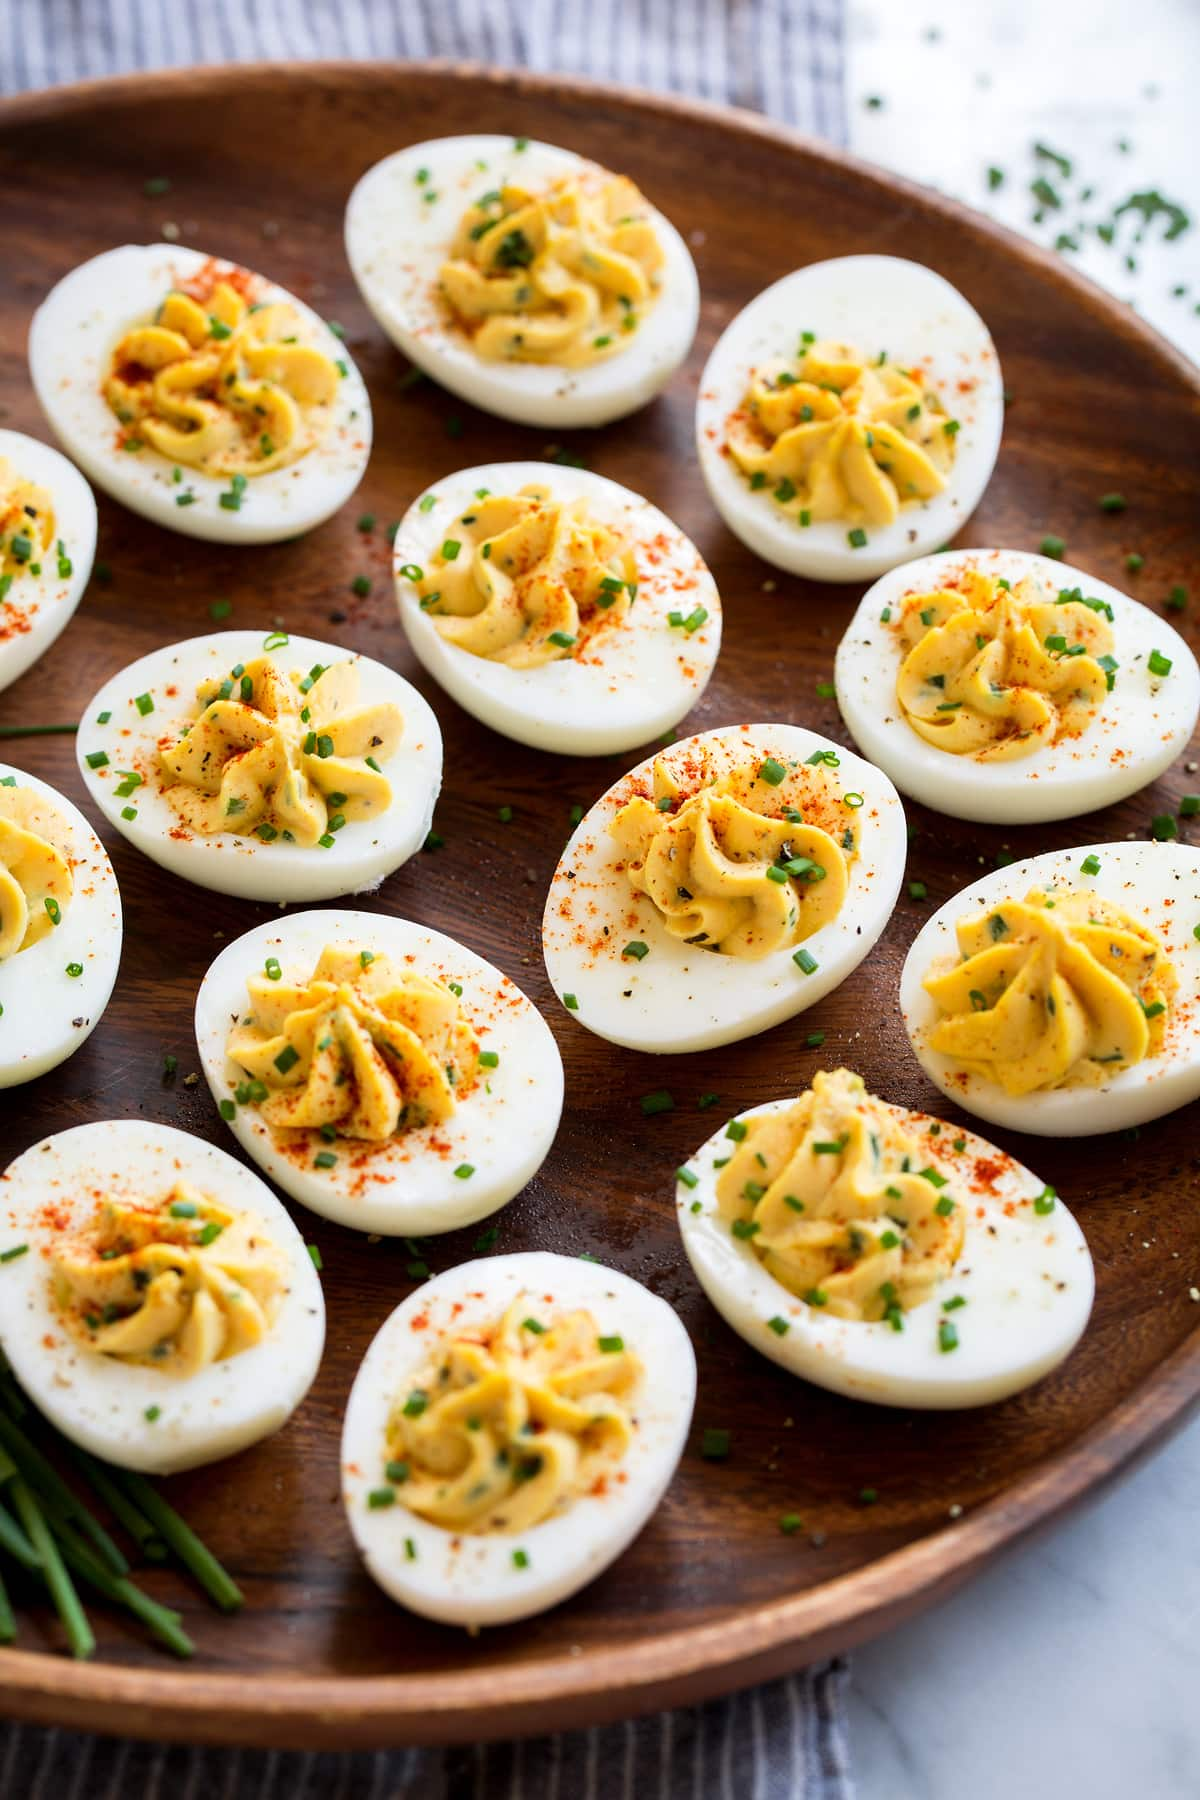 Plain deviled eggs on a wooden platter (no bacon).